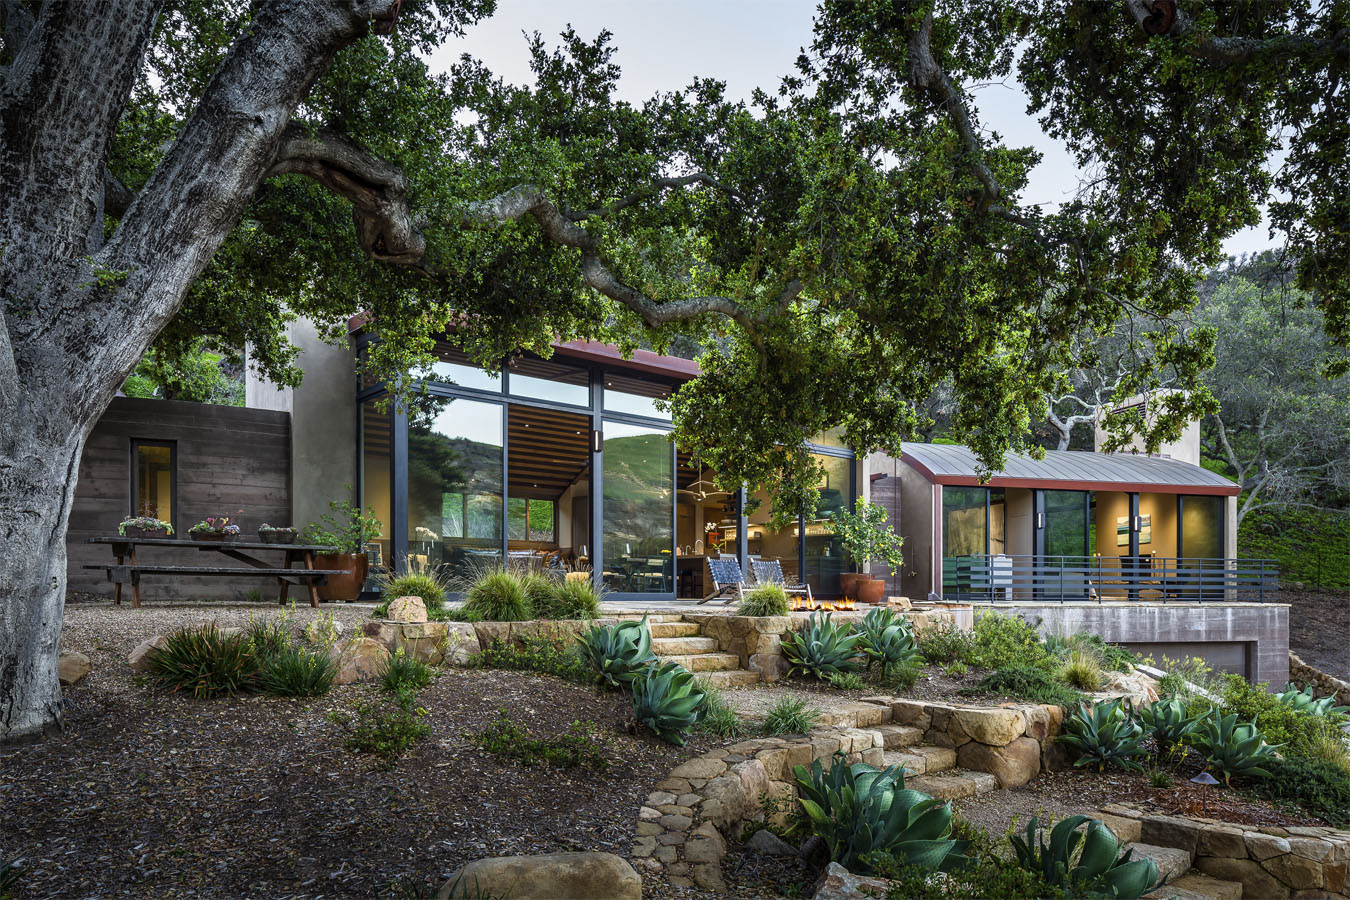 Rustic Modern Country House In Santa Barbara With Curved